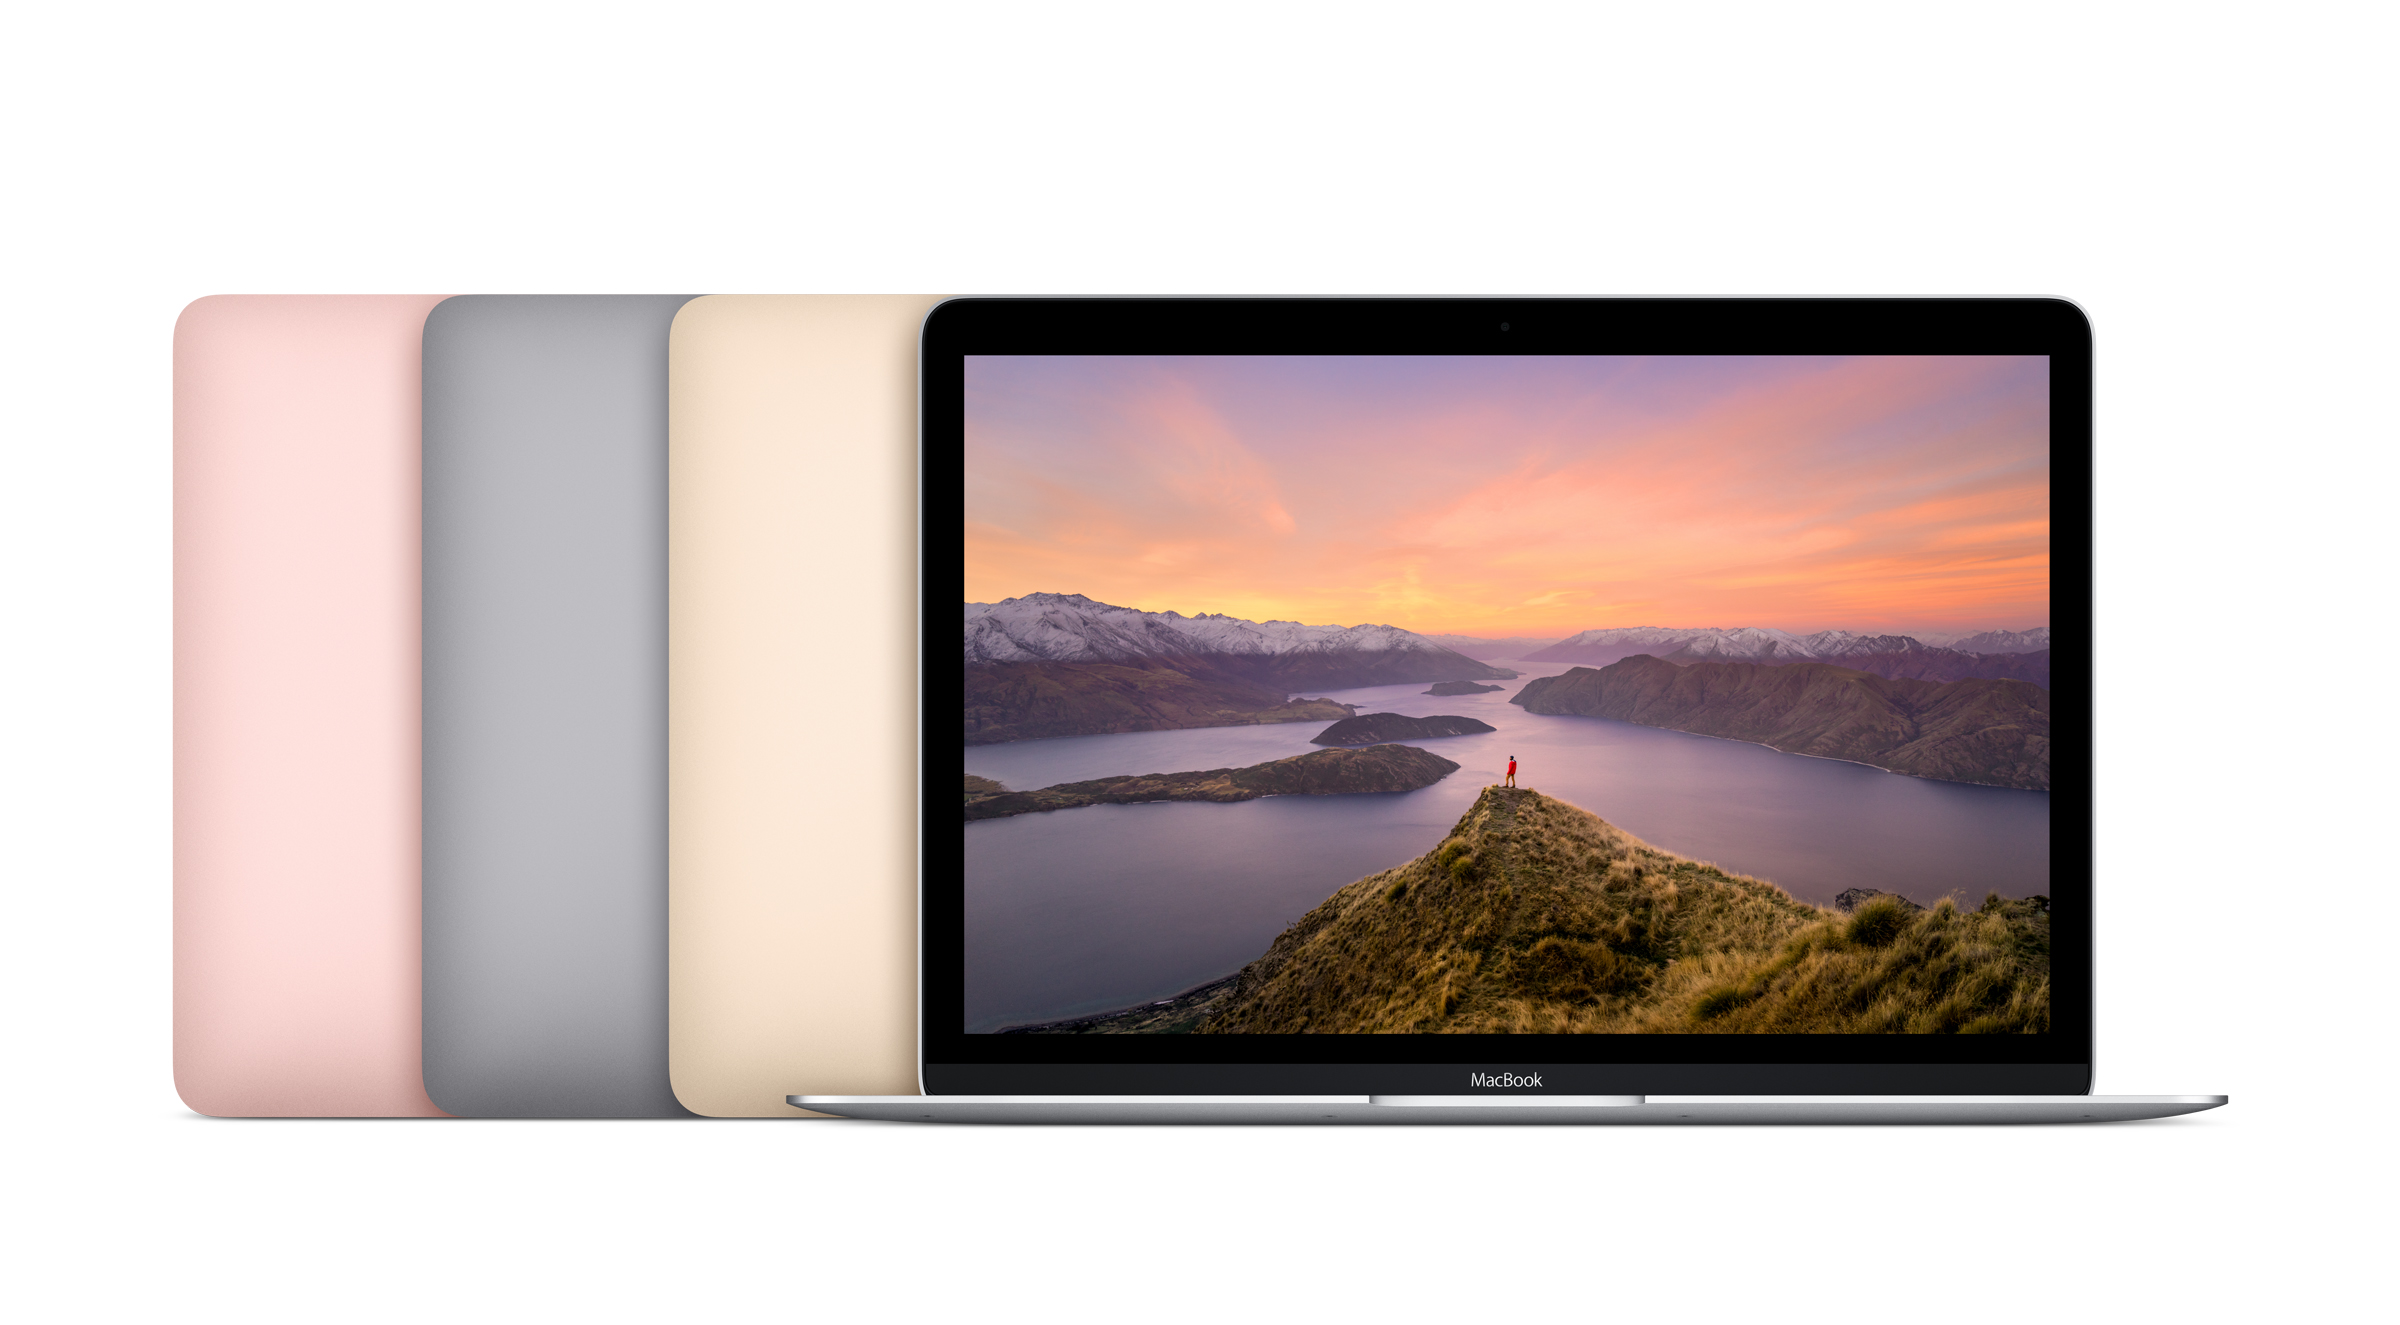 Apple S Macbook Gets Faster Processors Longer Battery